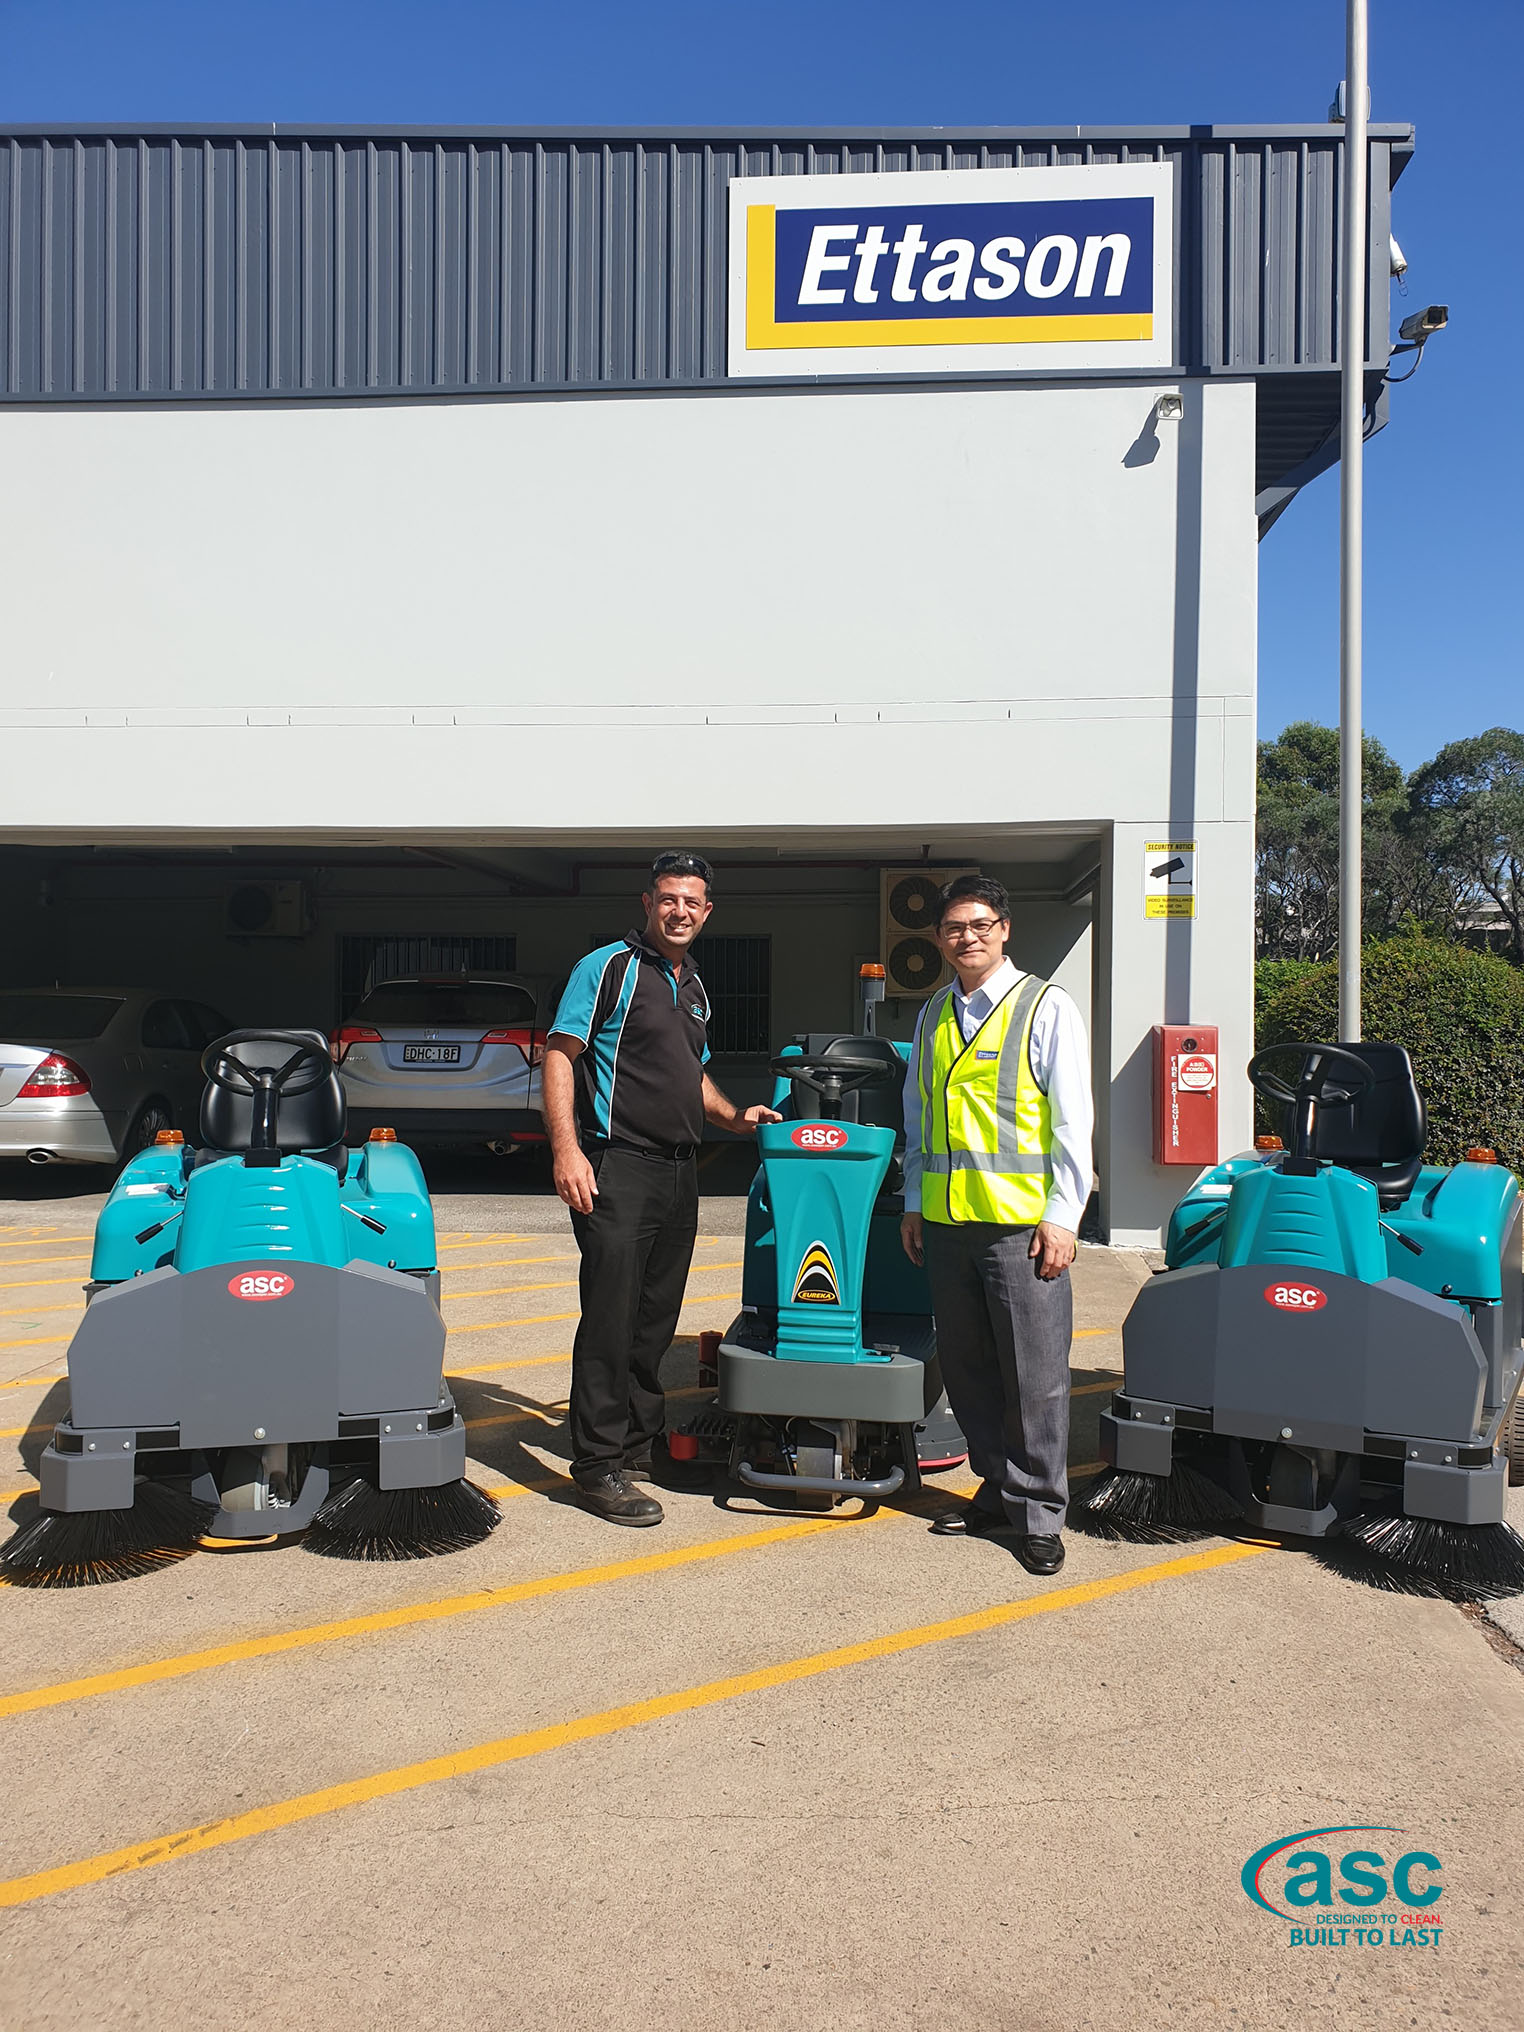 ASC's Sweepers & Scrubbers At Ettason